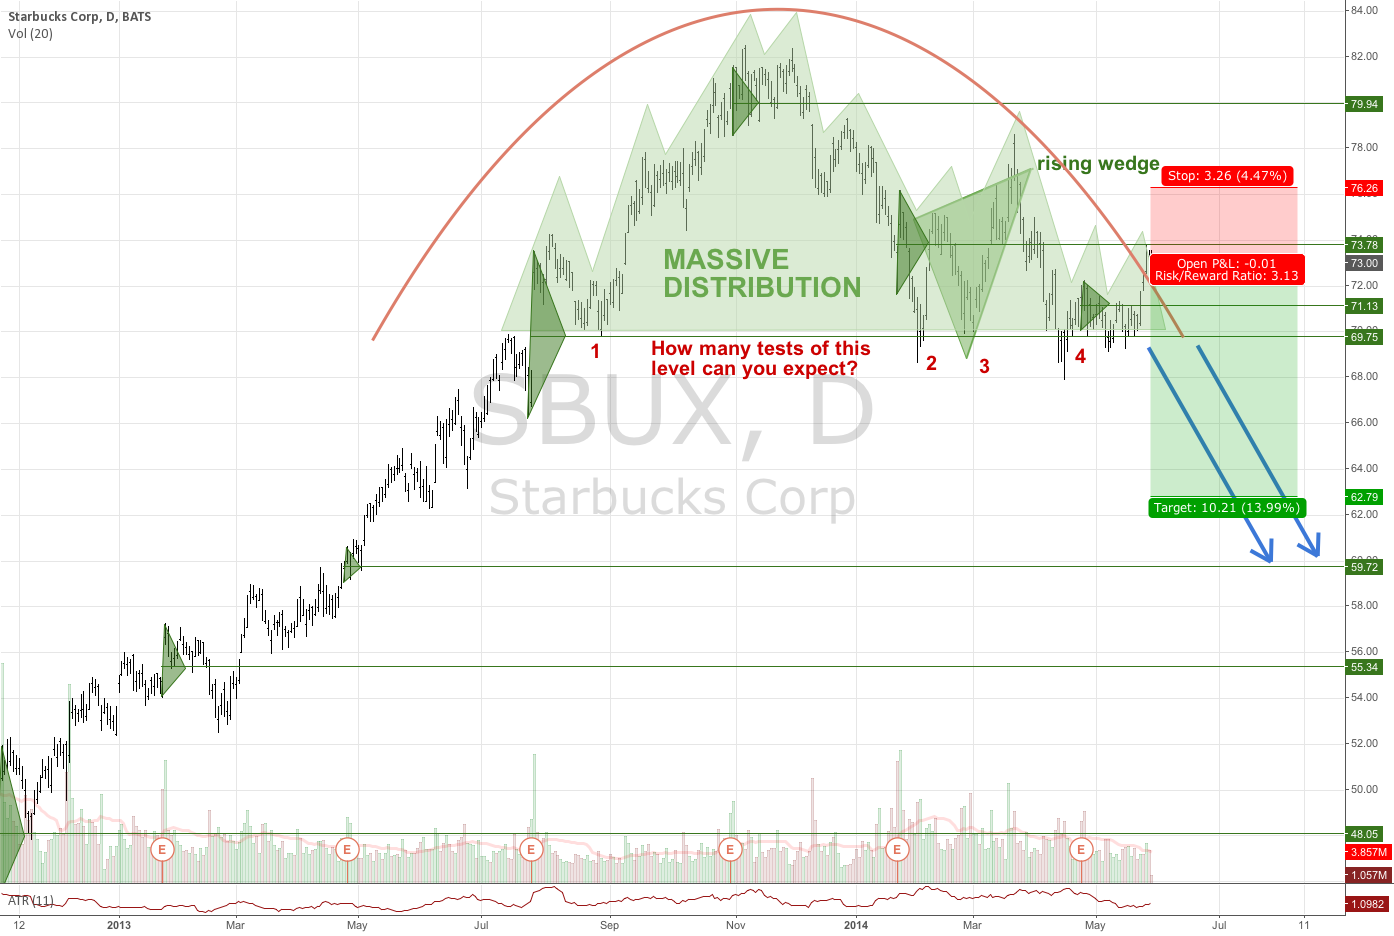 Starbucks Corp SBUX Daily - Rallied to Ideal Entry Level to Sell